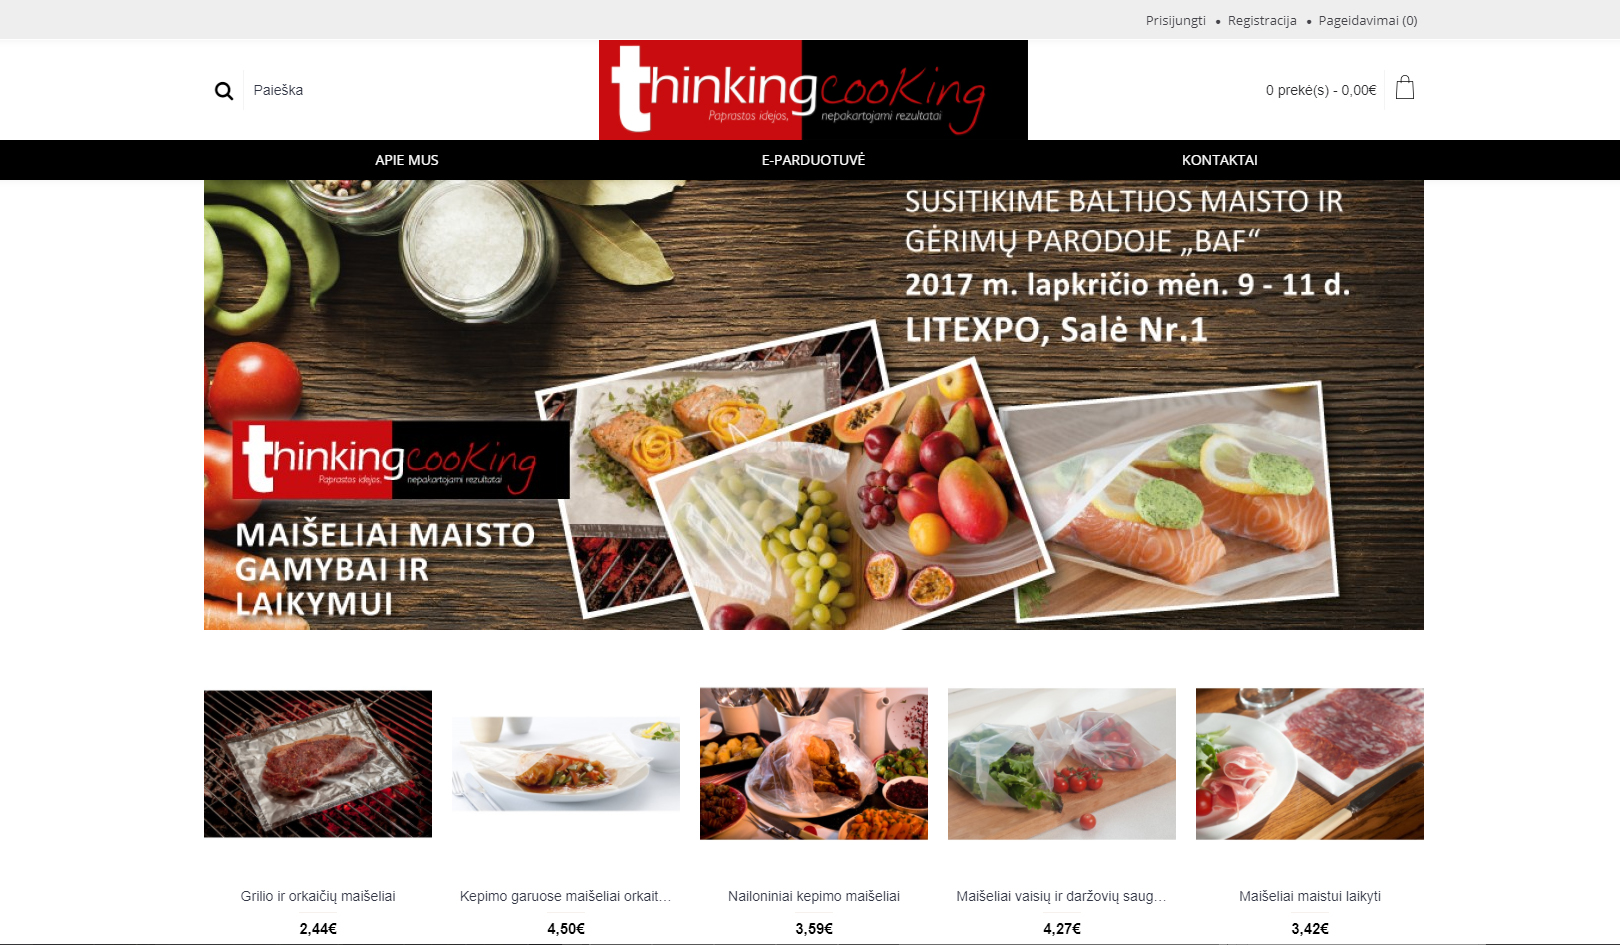 Thinking-Cooking will exhibit at the Baltic Food and Beverage Exhibition